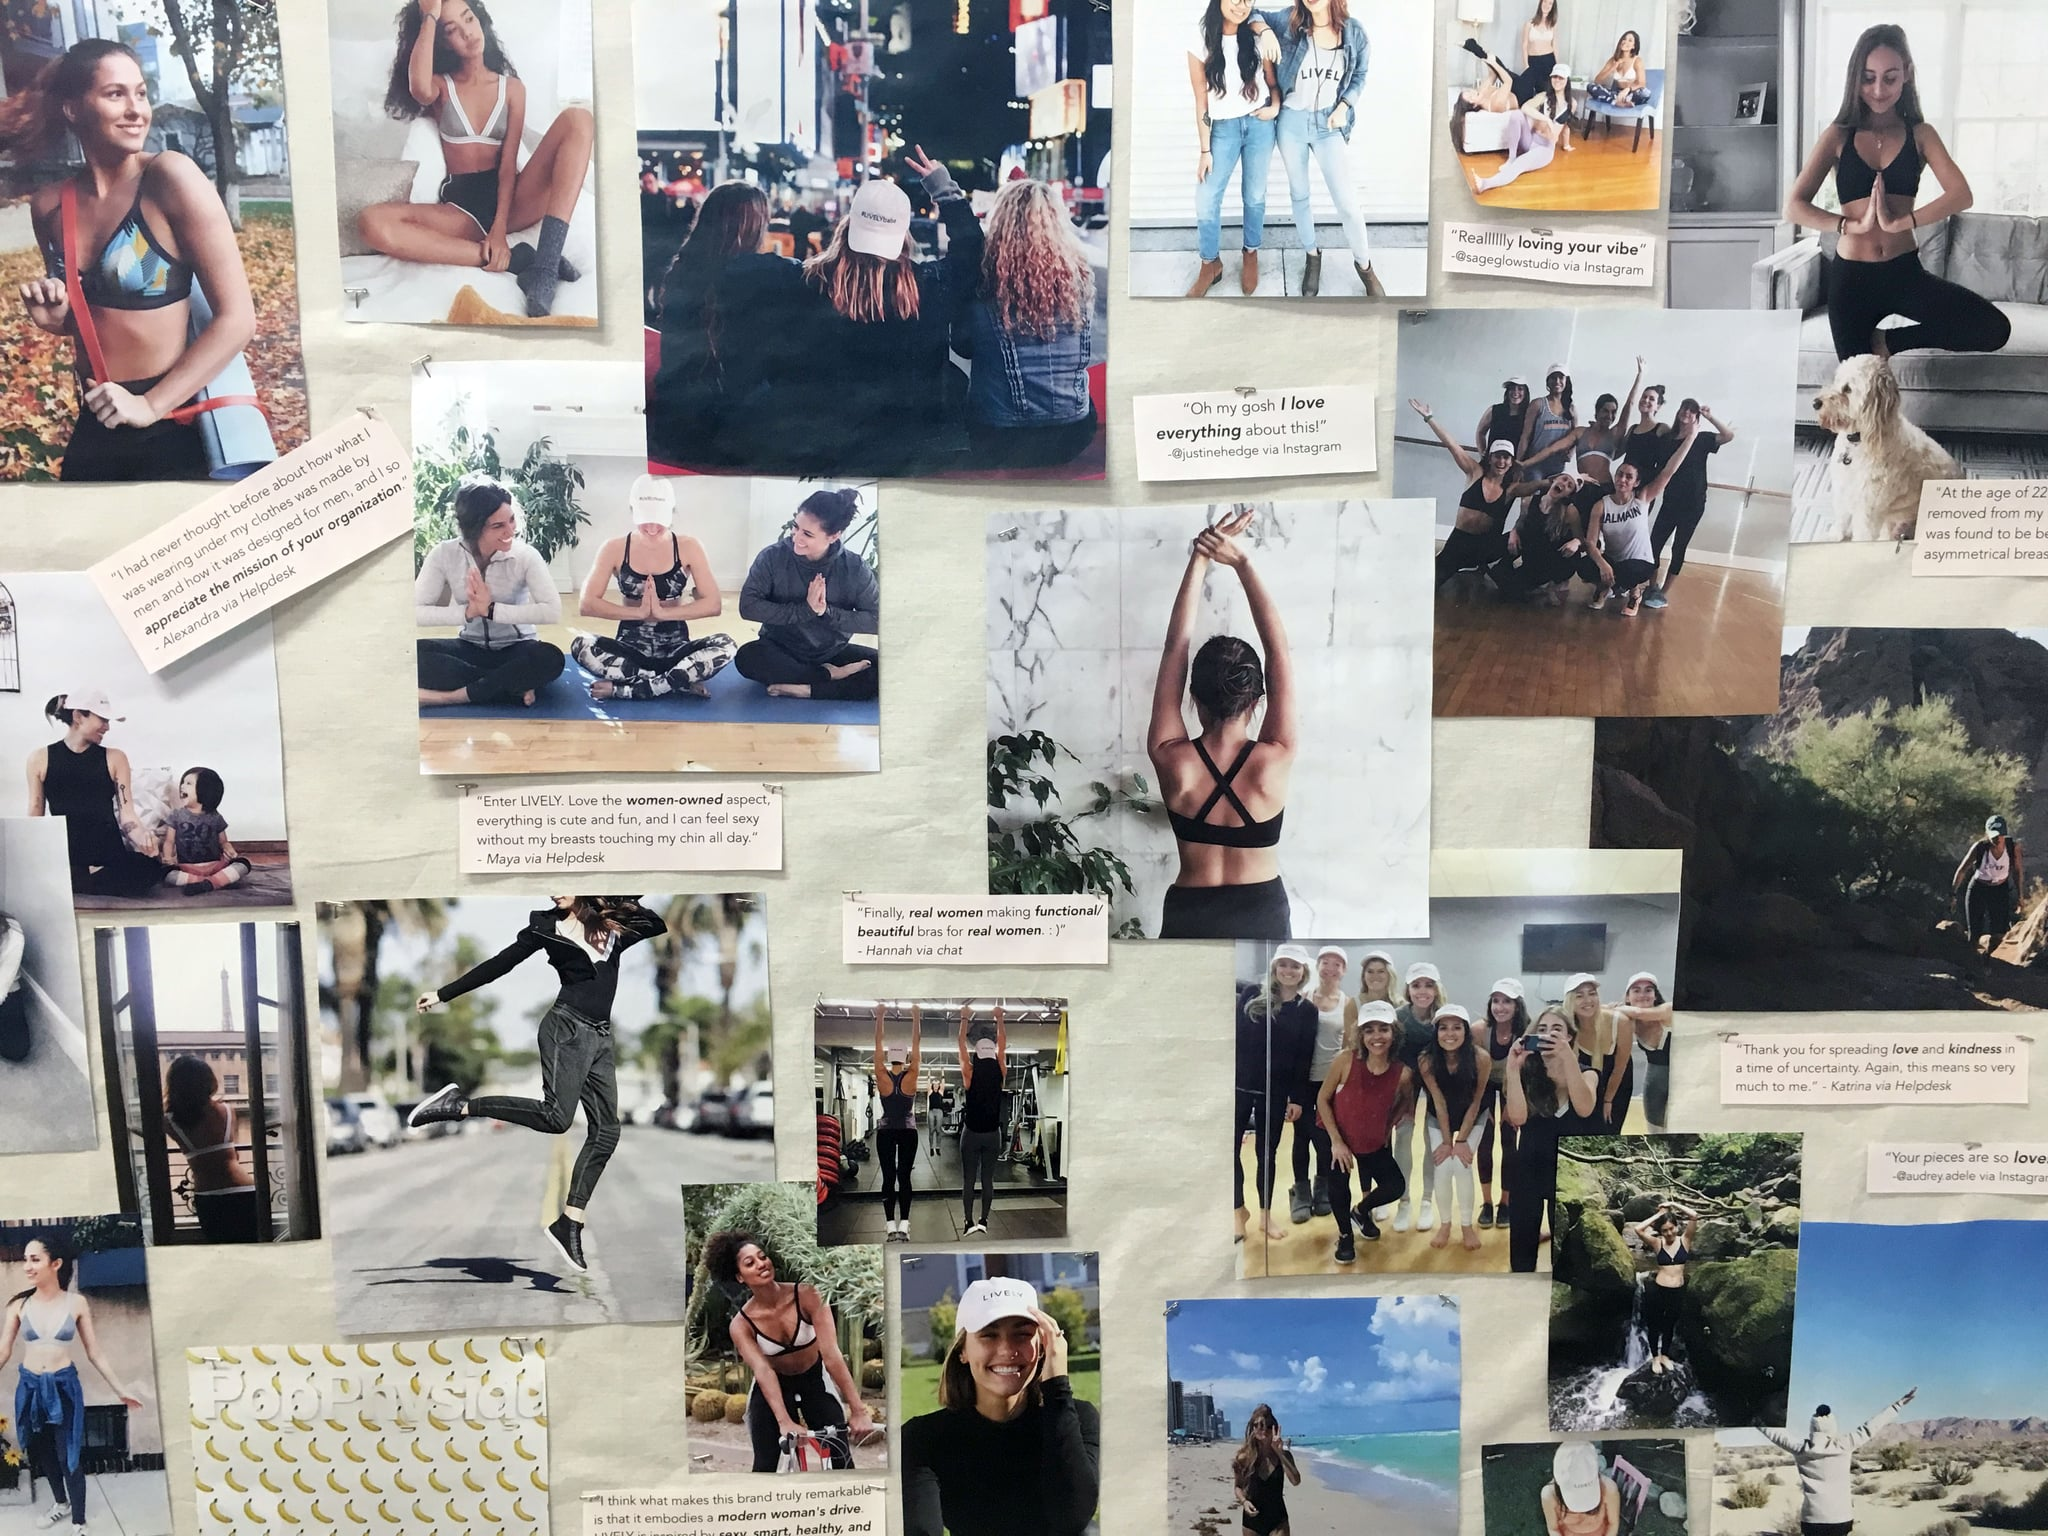 Inspiration Board in Michelle's office featuring product lifestyle shots and customer feedback